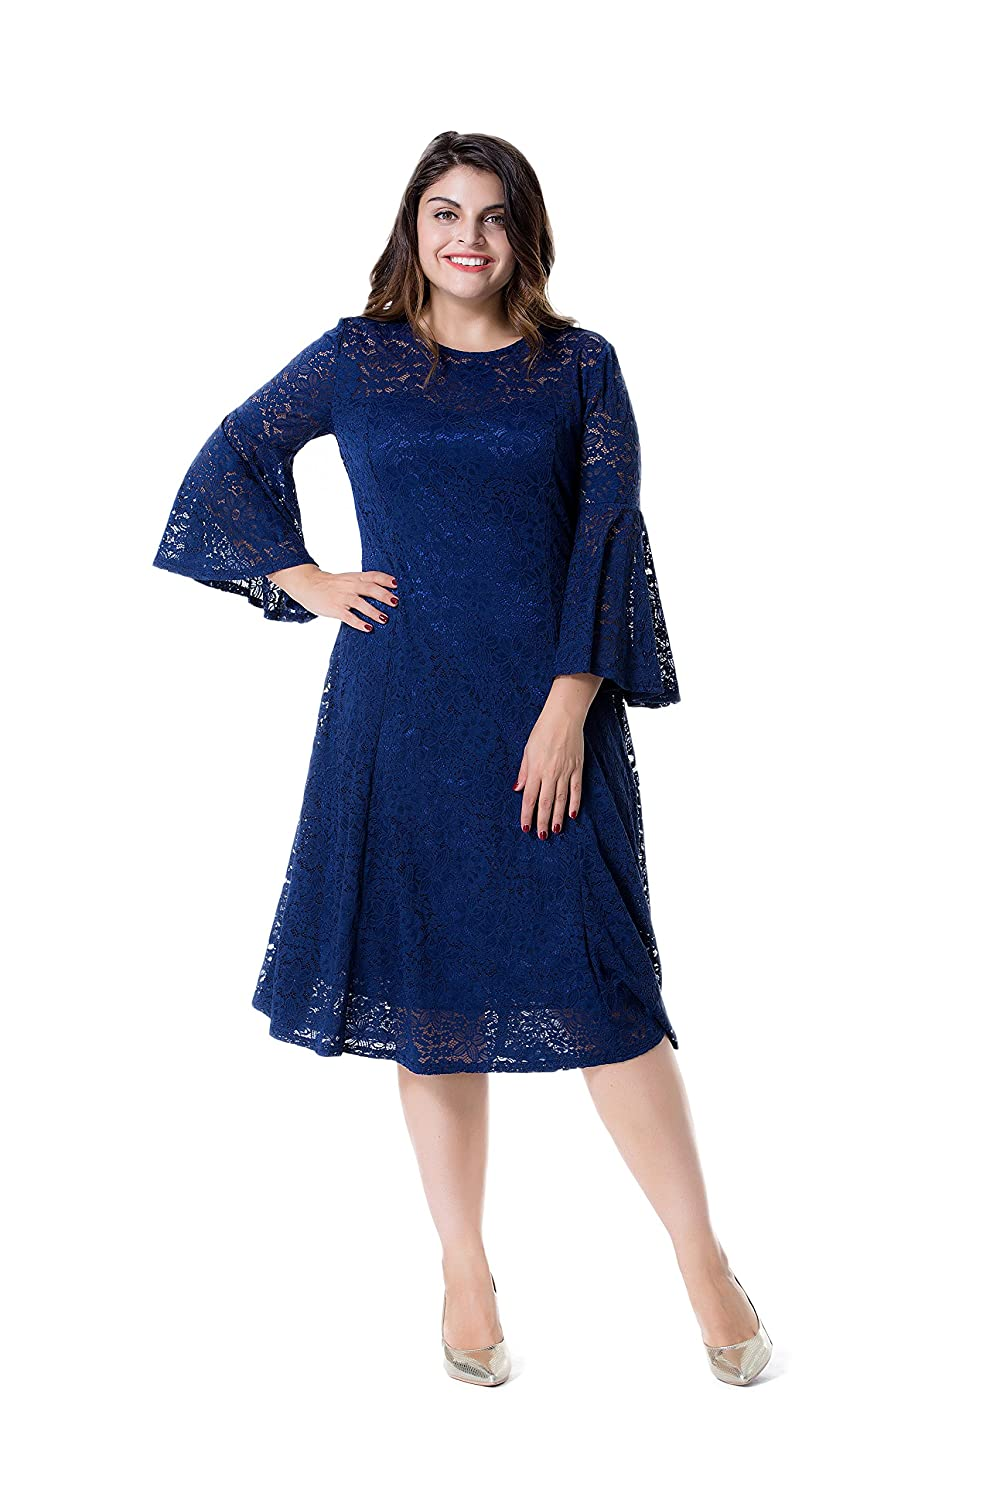 34d10fa6031 Top1  ESPRLIA Women s Plus Size Floral Lace With Bell Sleeves Midi A-Line  Evening Dress